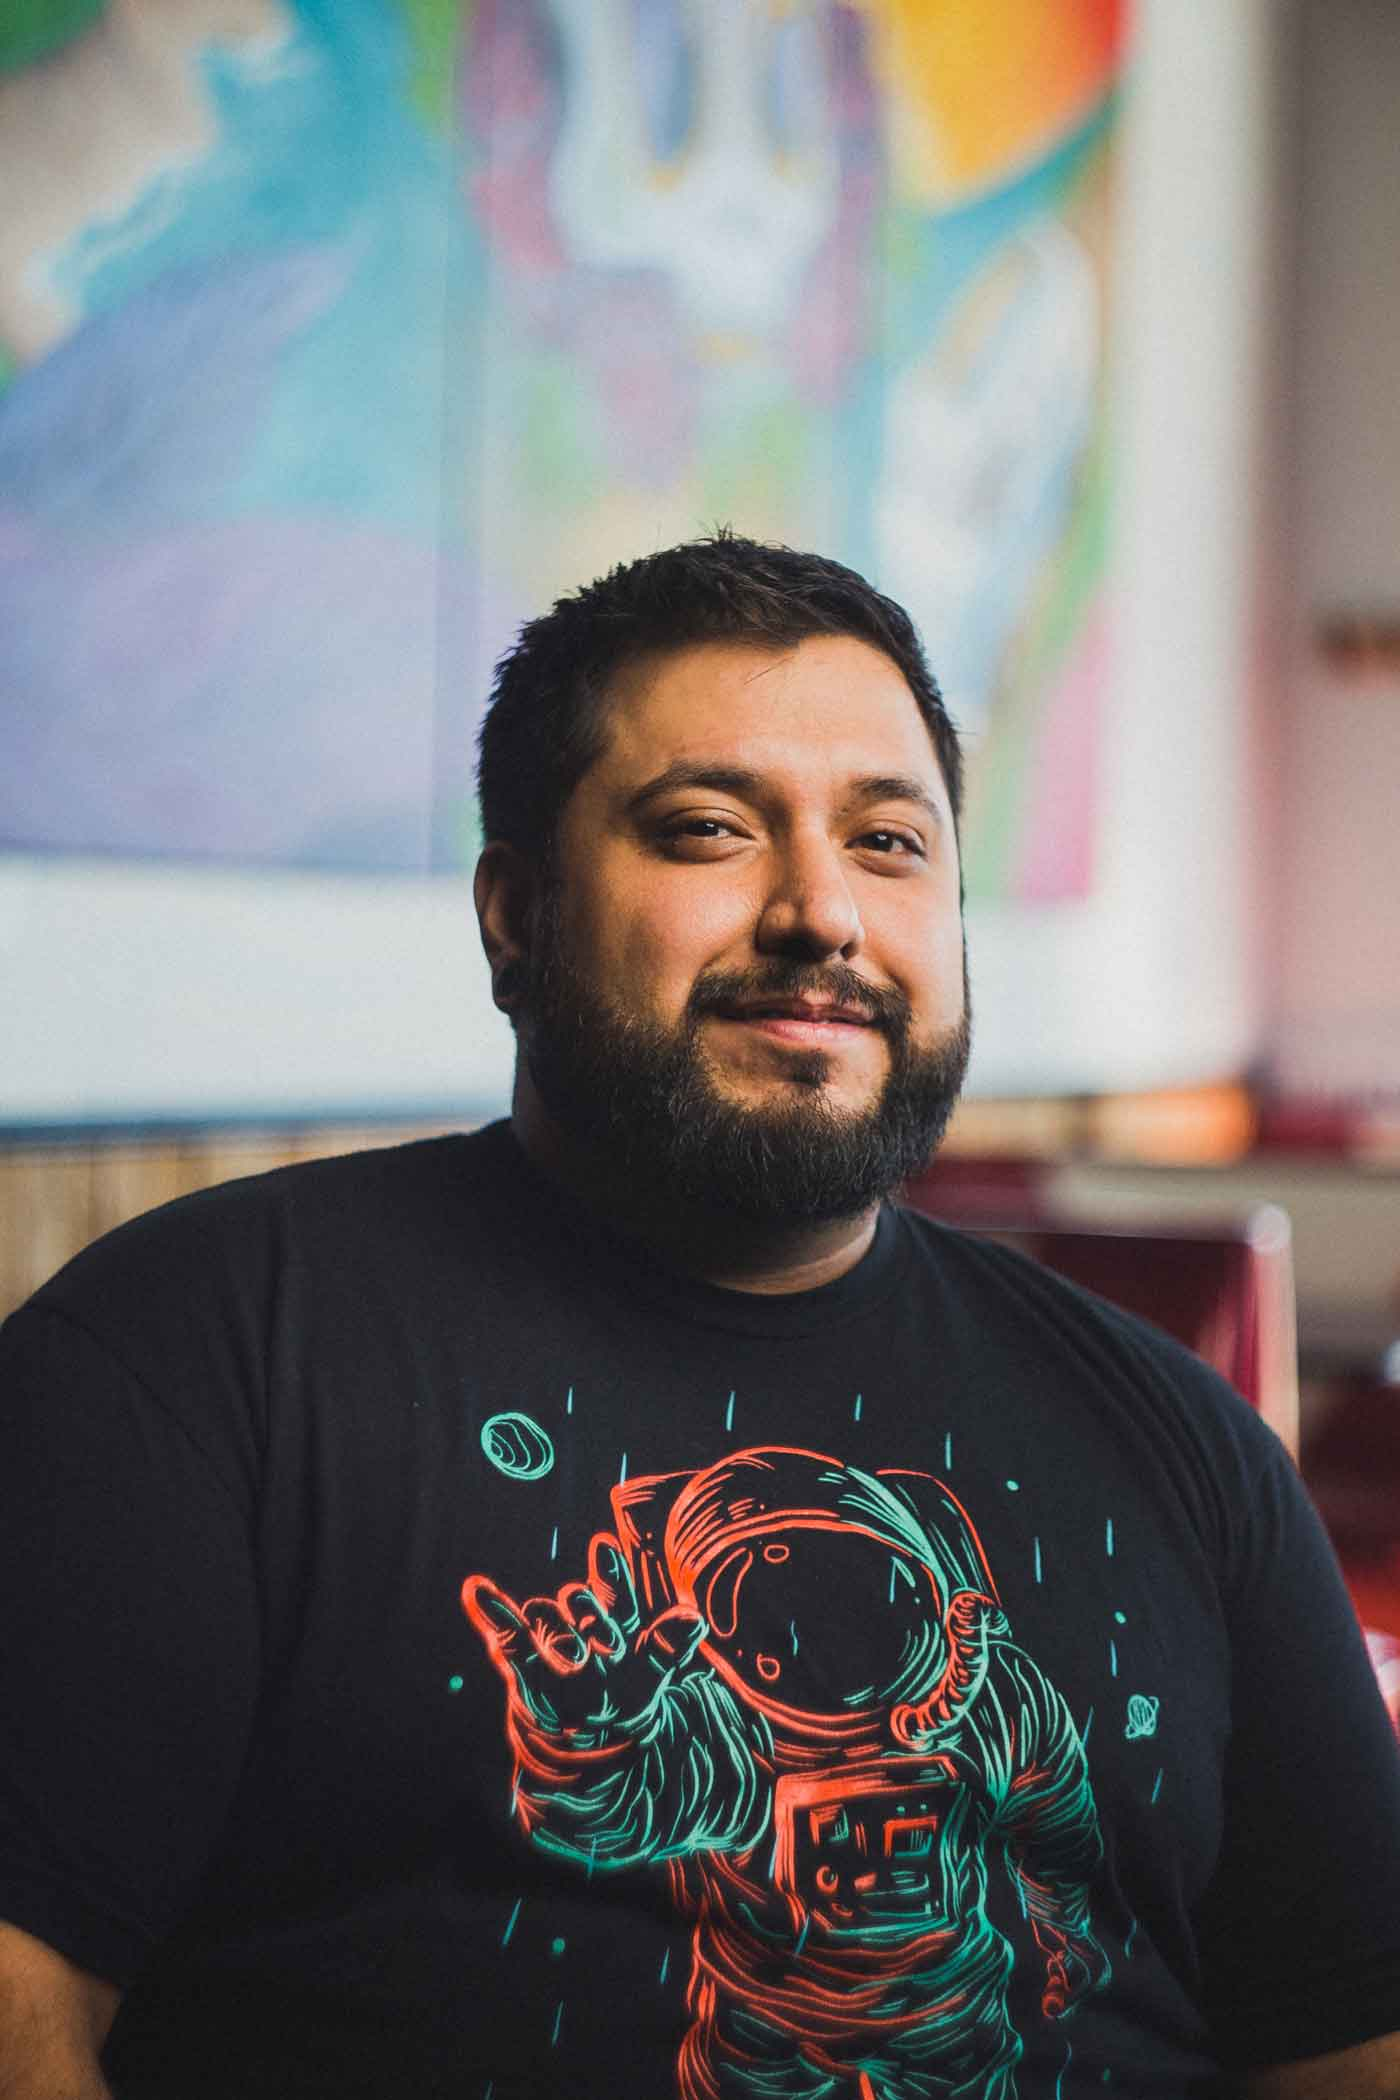 Daniel Rodriguez, owner of Burrito Bros in Marion, NC, Mountain BizWorks.